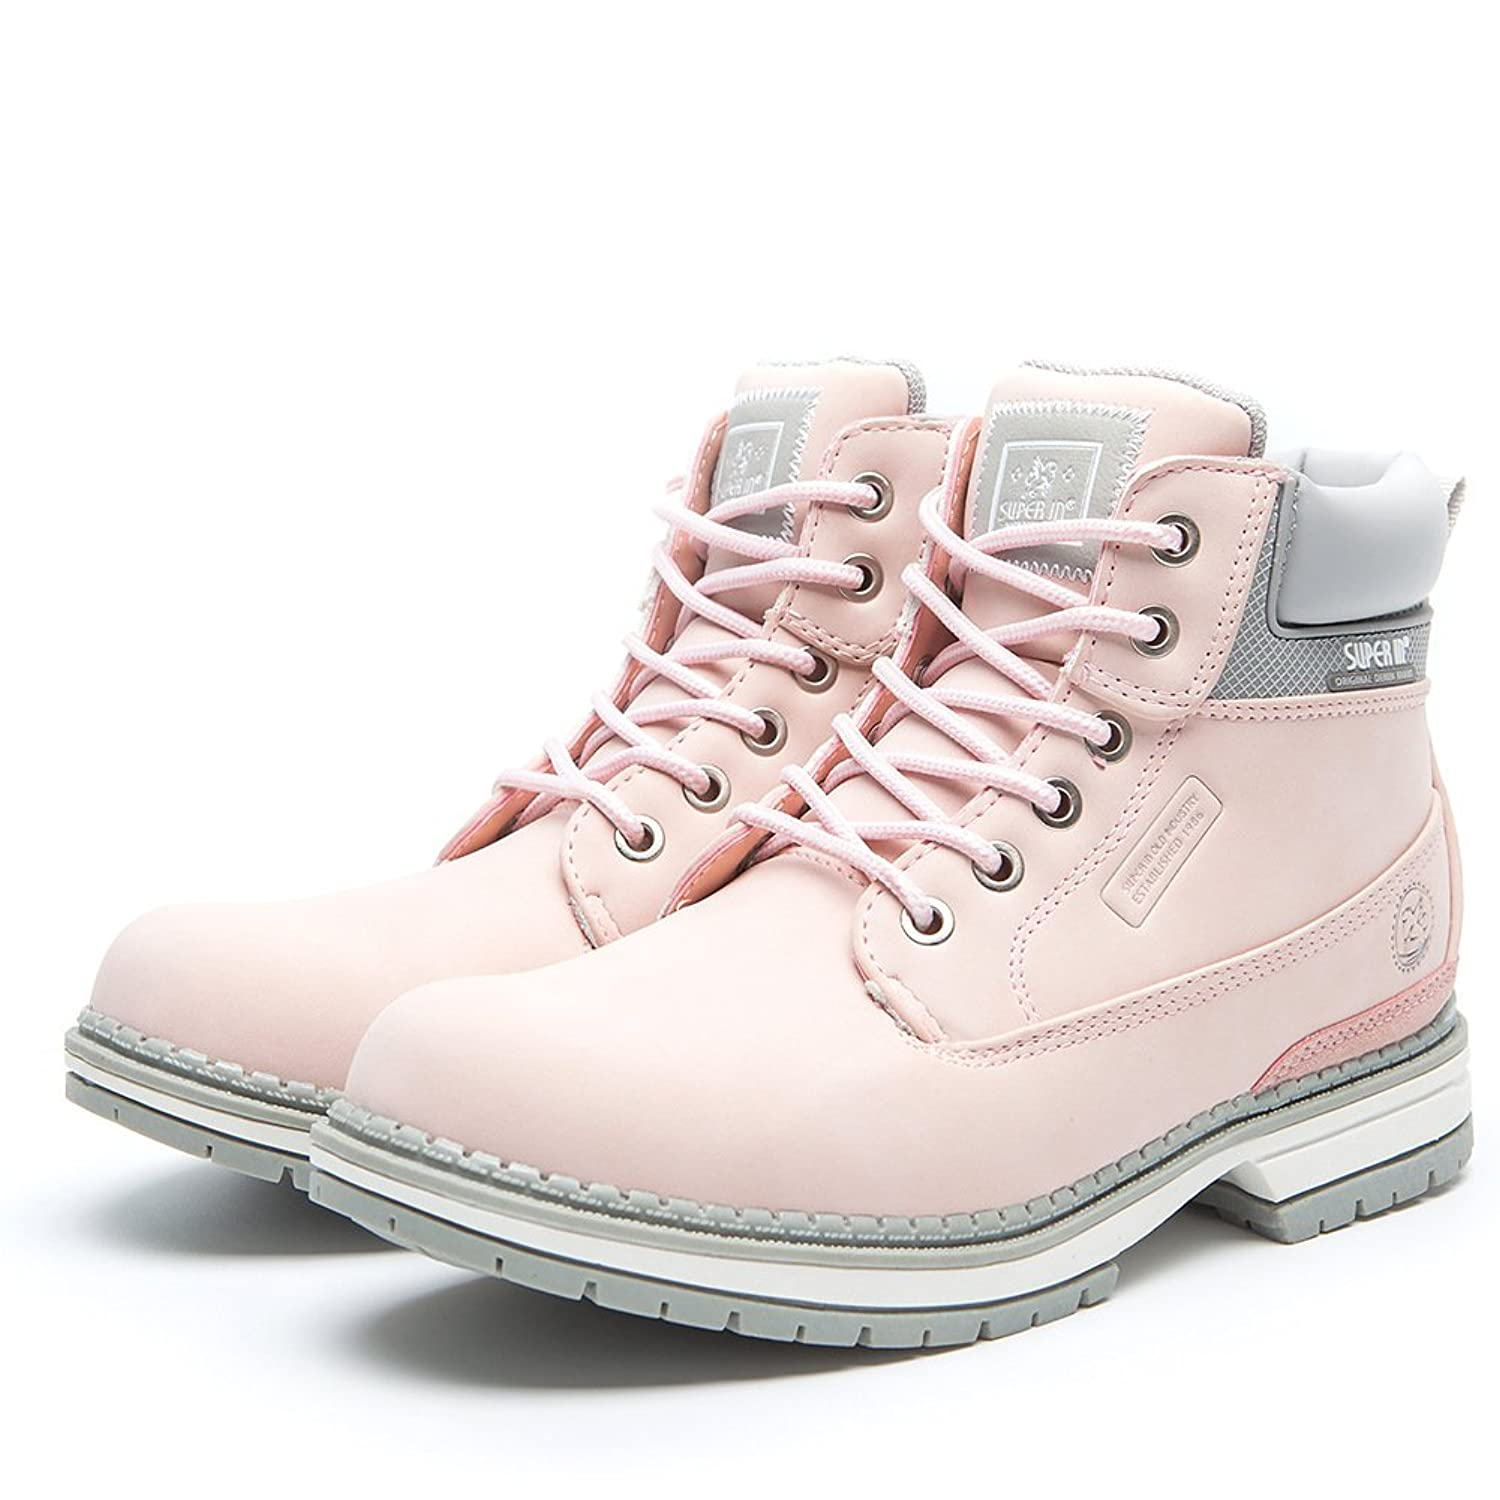 Womens Spring Flat Ankle Boots - AnjouFemme Ladies Safety Boots, Womens Lace  up Shoes, Comfortable Waterproof Boots, Best Choice for Walking Hiking and  ...